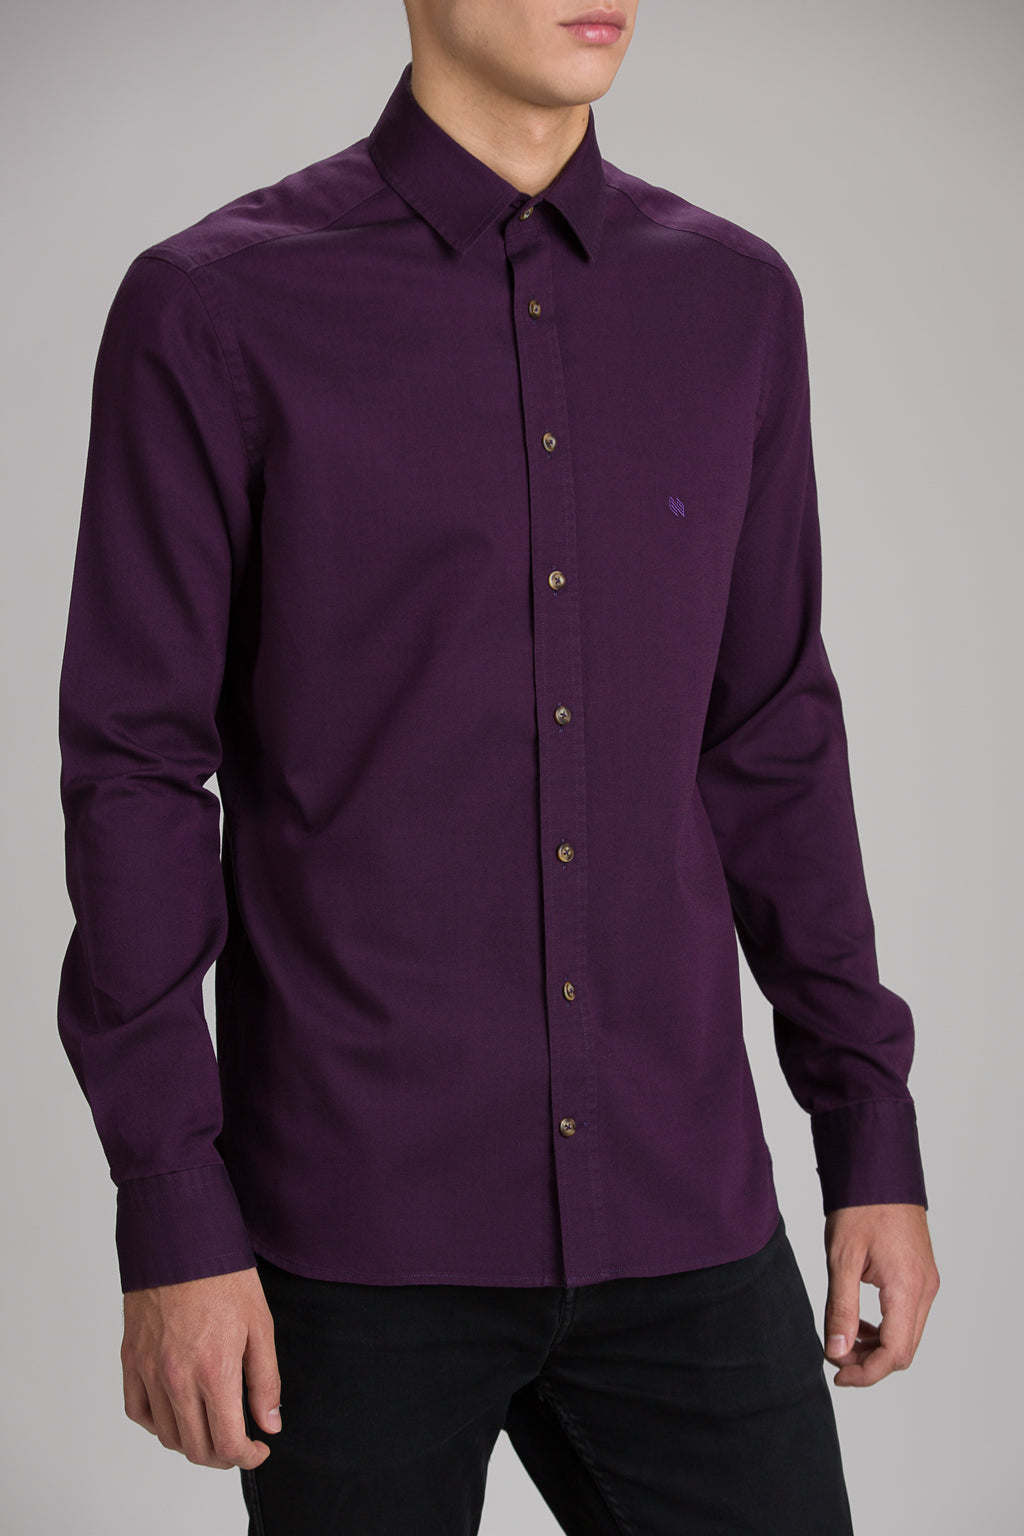 GERIR ORIGINAL CLASSIC COLLAR SHIRT